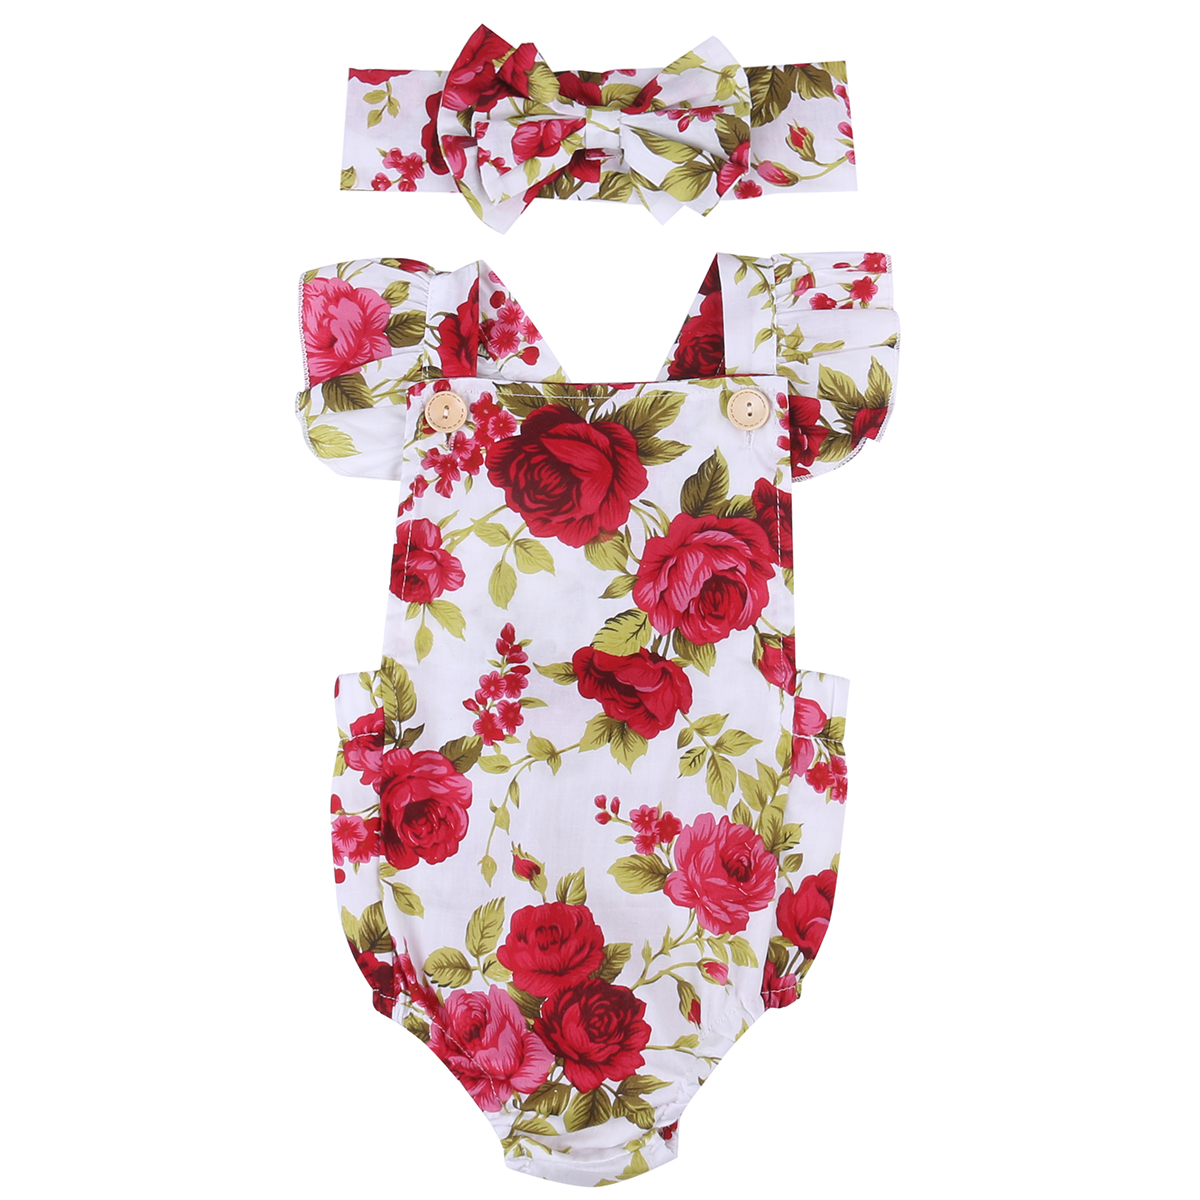 2017 Floral Baby Romper Newborn Baby Girl Clothes Ruffles Sleeve Bodysuit +Headband 2pcs Outfit Bebek Giyim Sunsuit 0-24M 3pcs set cute newborn baby girl clothes 2017 worth the wait baby bodysuit romper ruffles tutu skirted shorts headband outfits